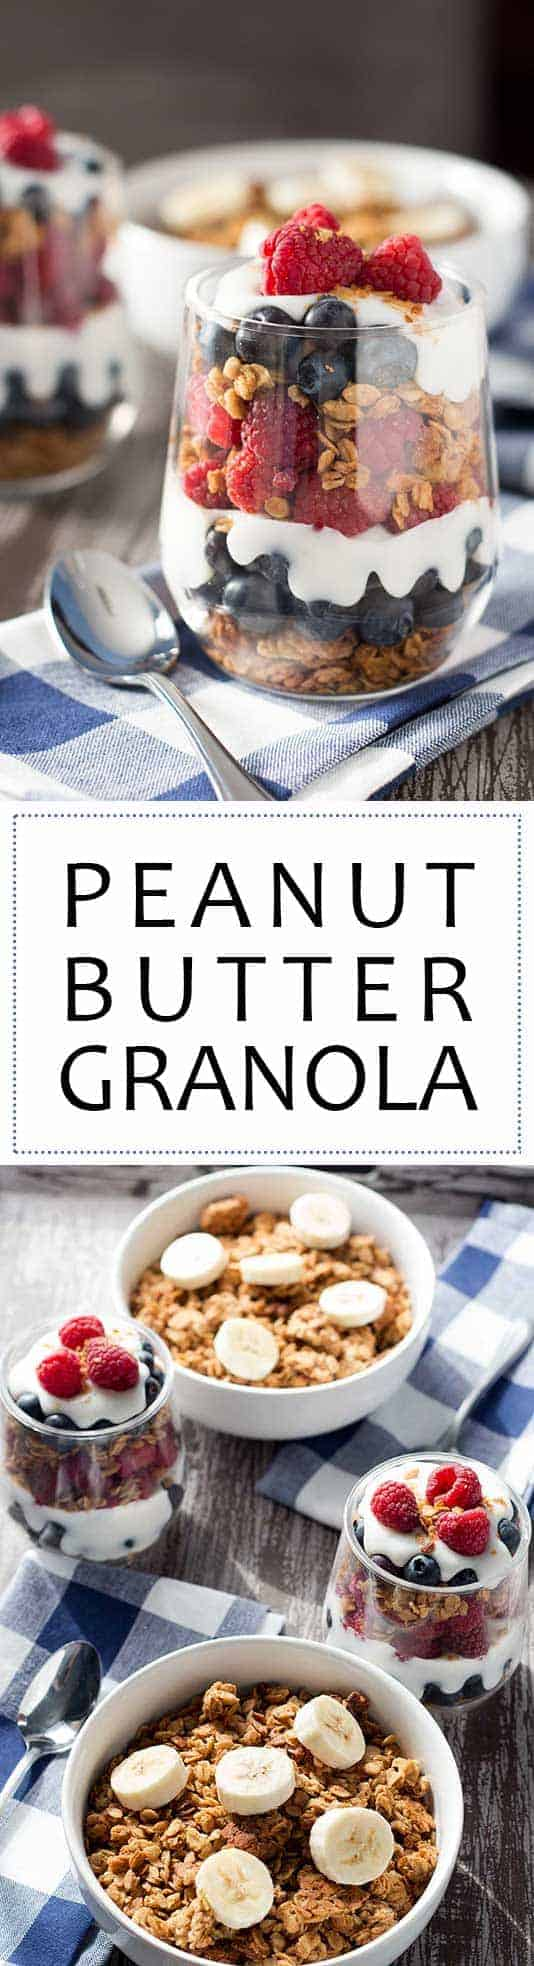 Easy Peanut Butter Granola Pin